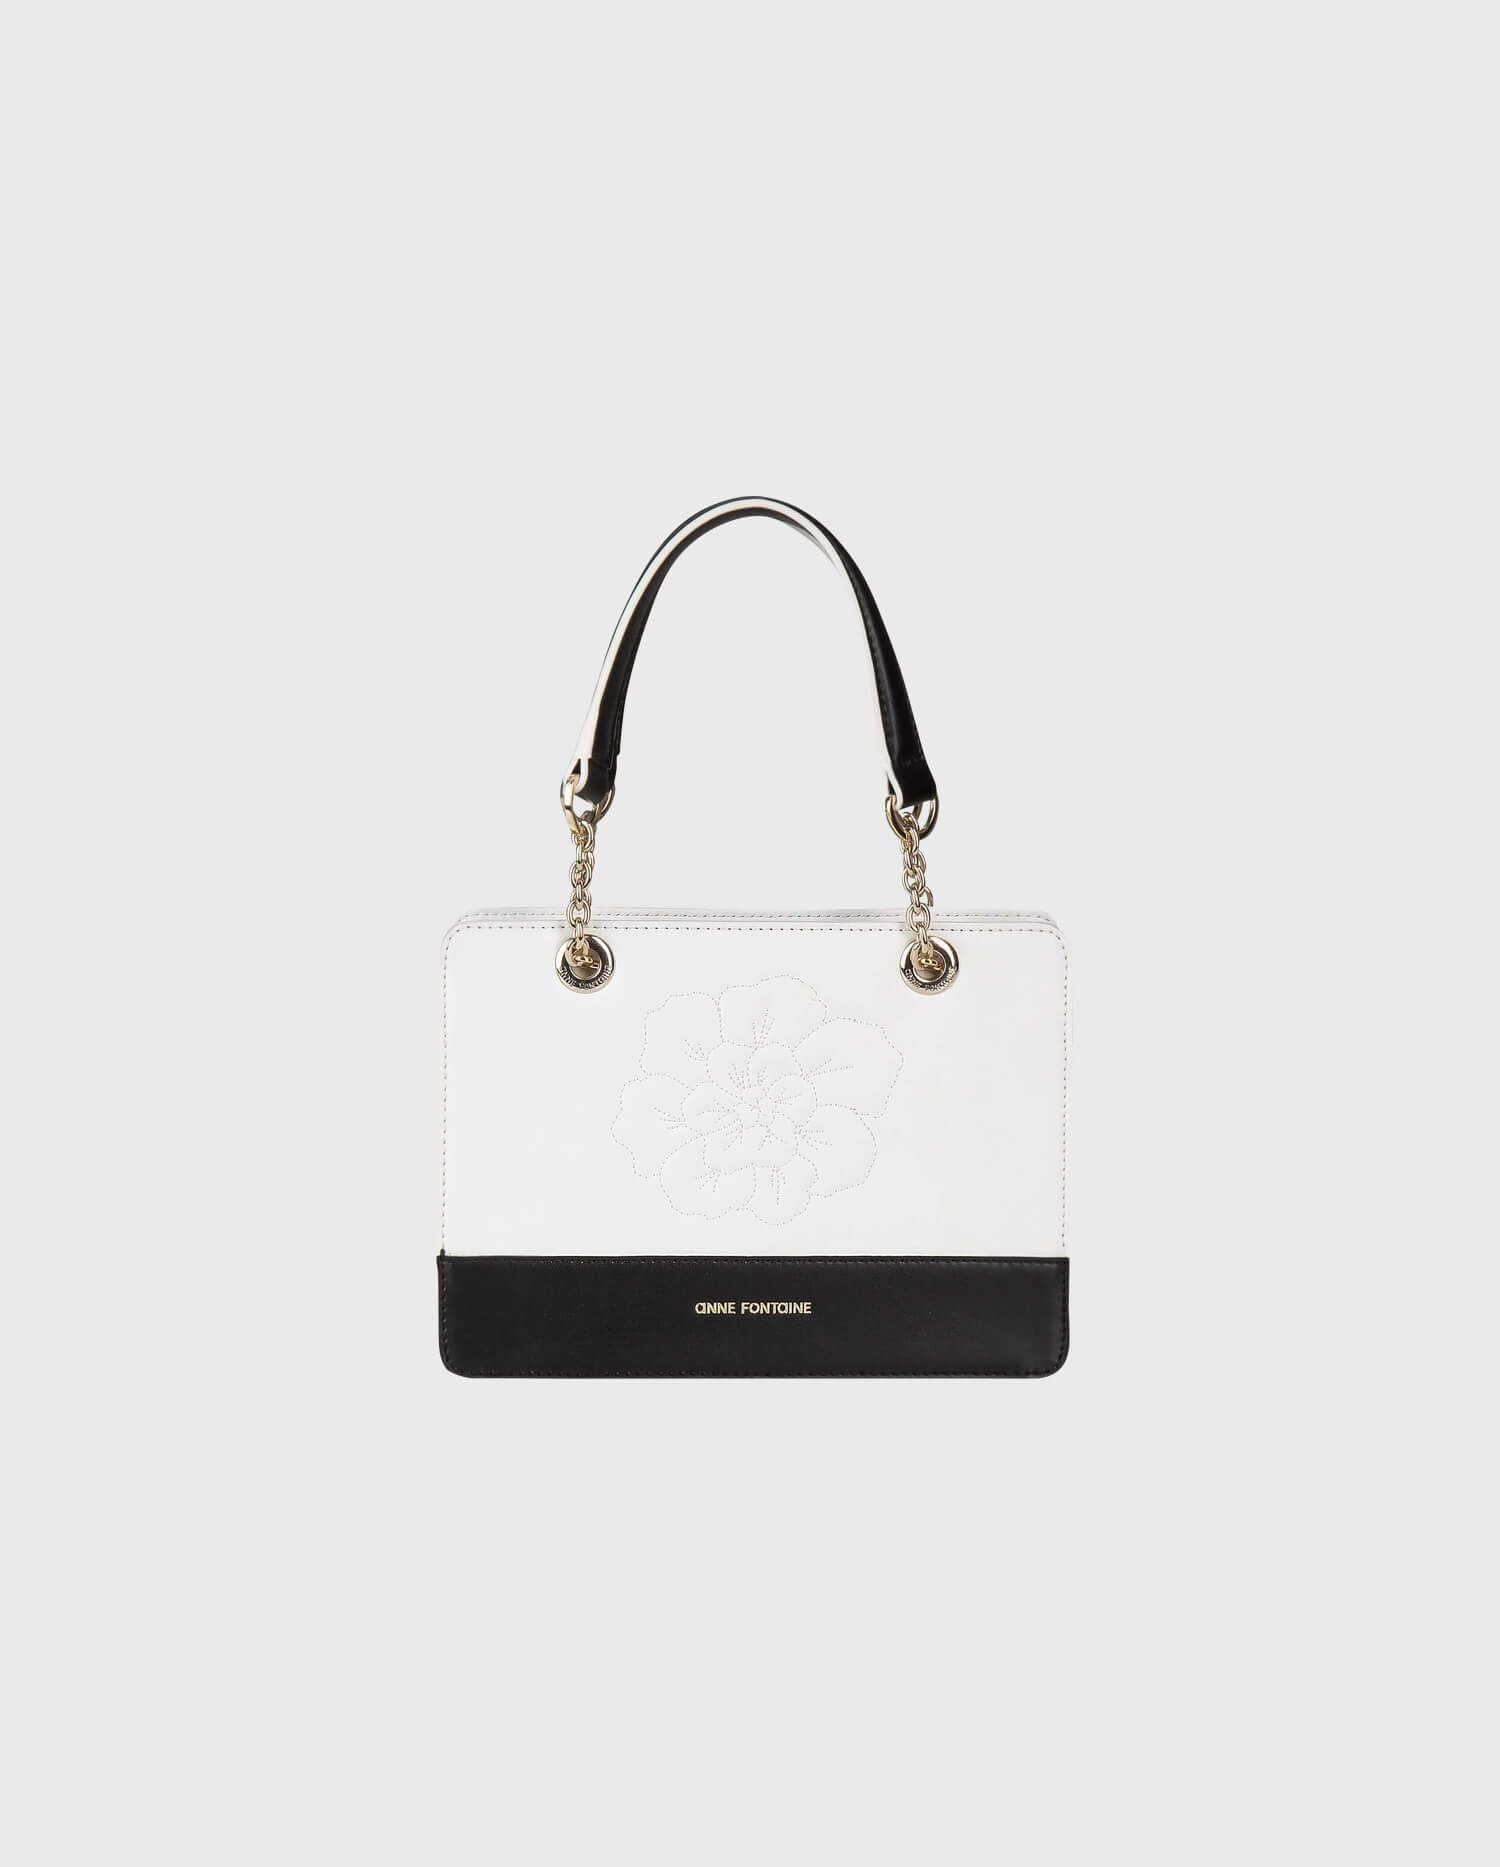 The ICEBERG Black & White Leather Shoulder Bag Is The Perfect Handbag To Build Your Parisian Chic Wardrobe.